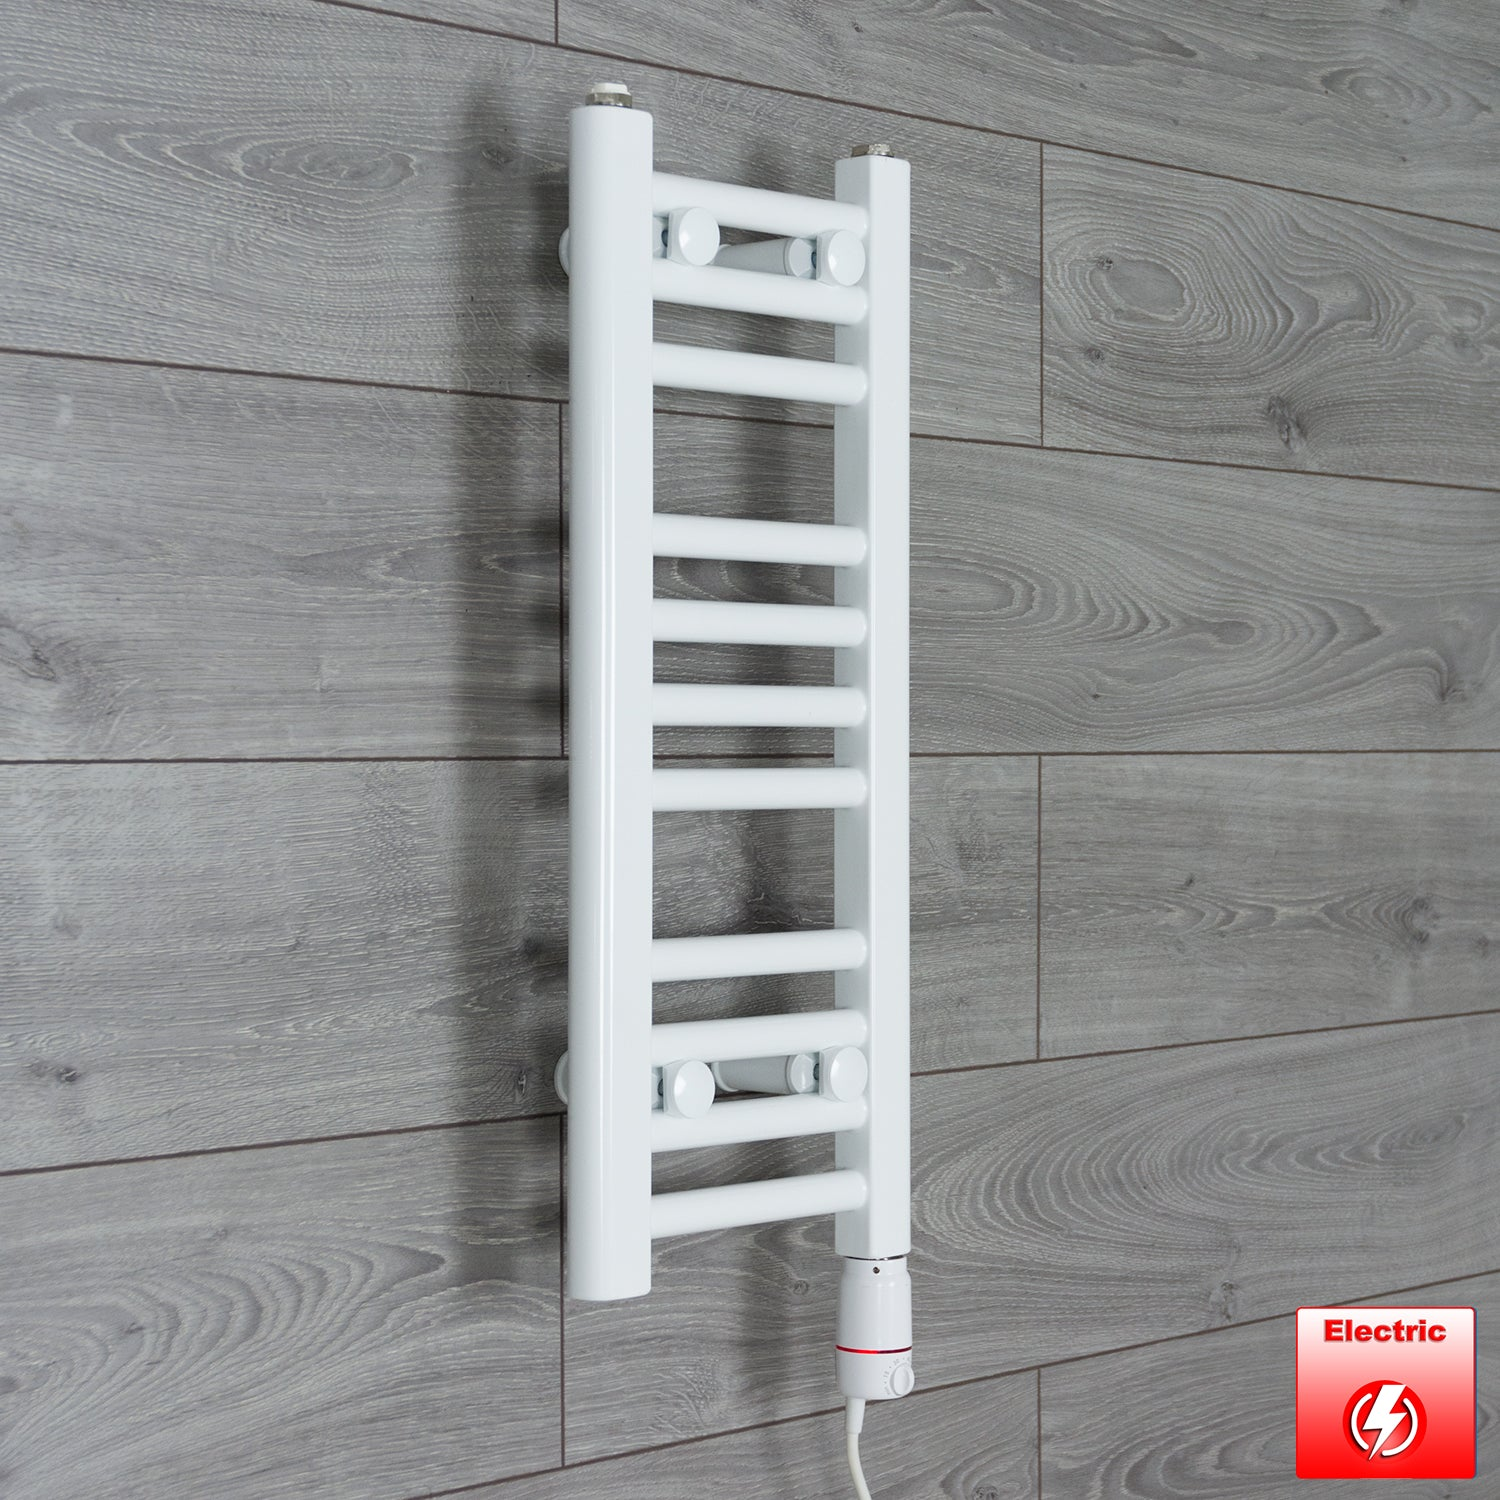 250mm Wide 600mm High Flat WHITE Pre-Filled Electric Heated Towel Rail Radiator HTR,GT Thermostatic